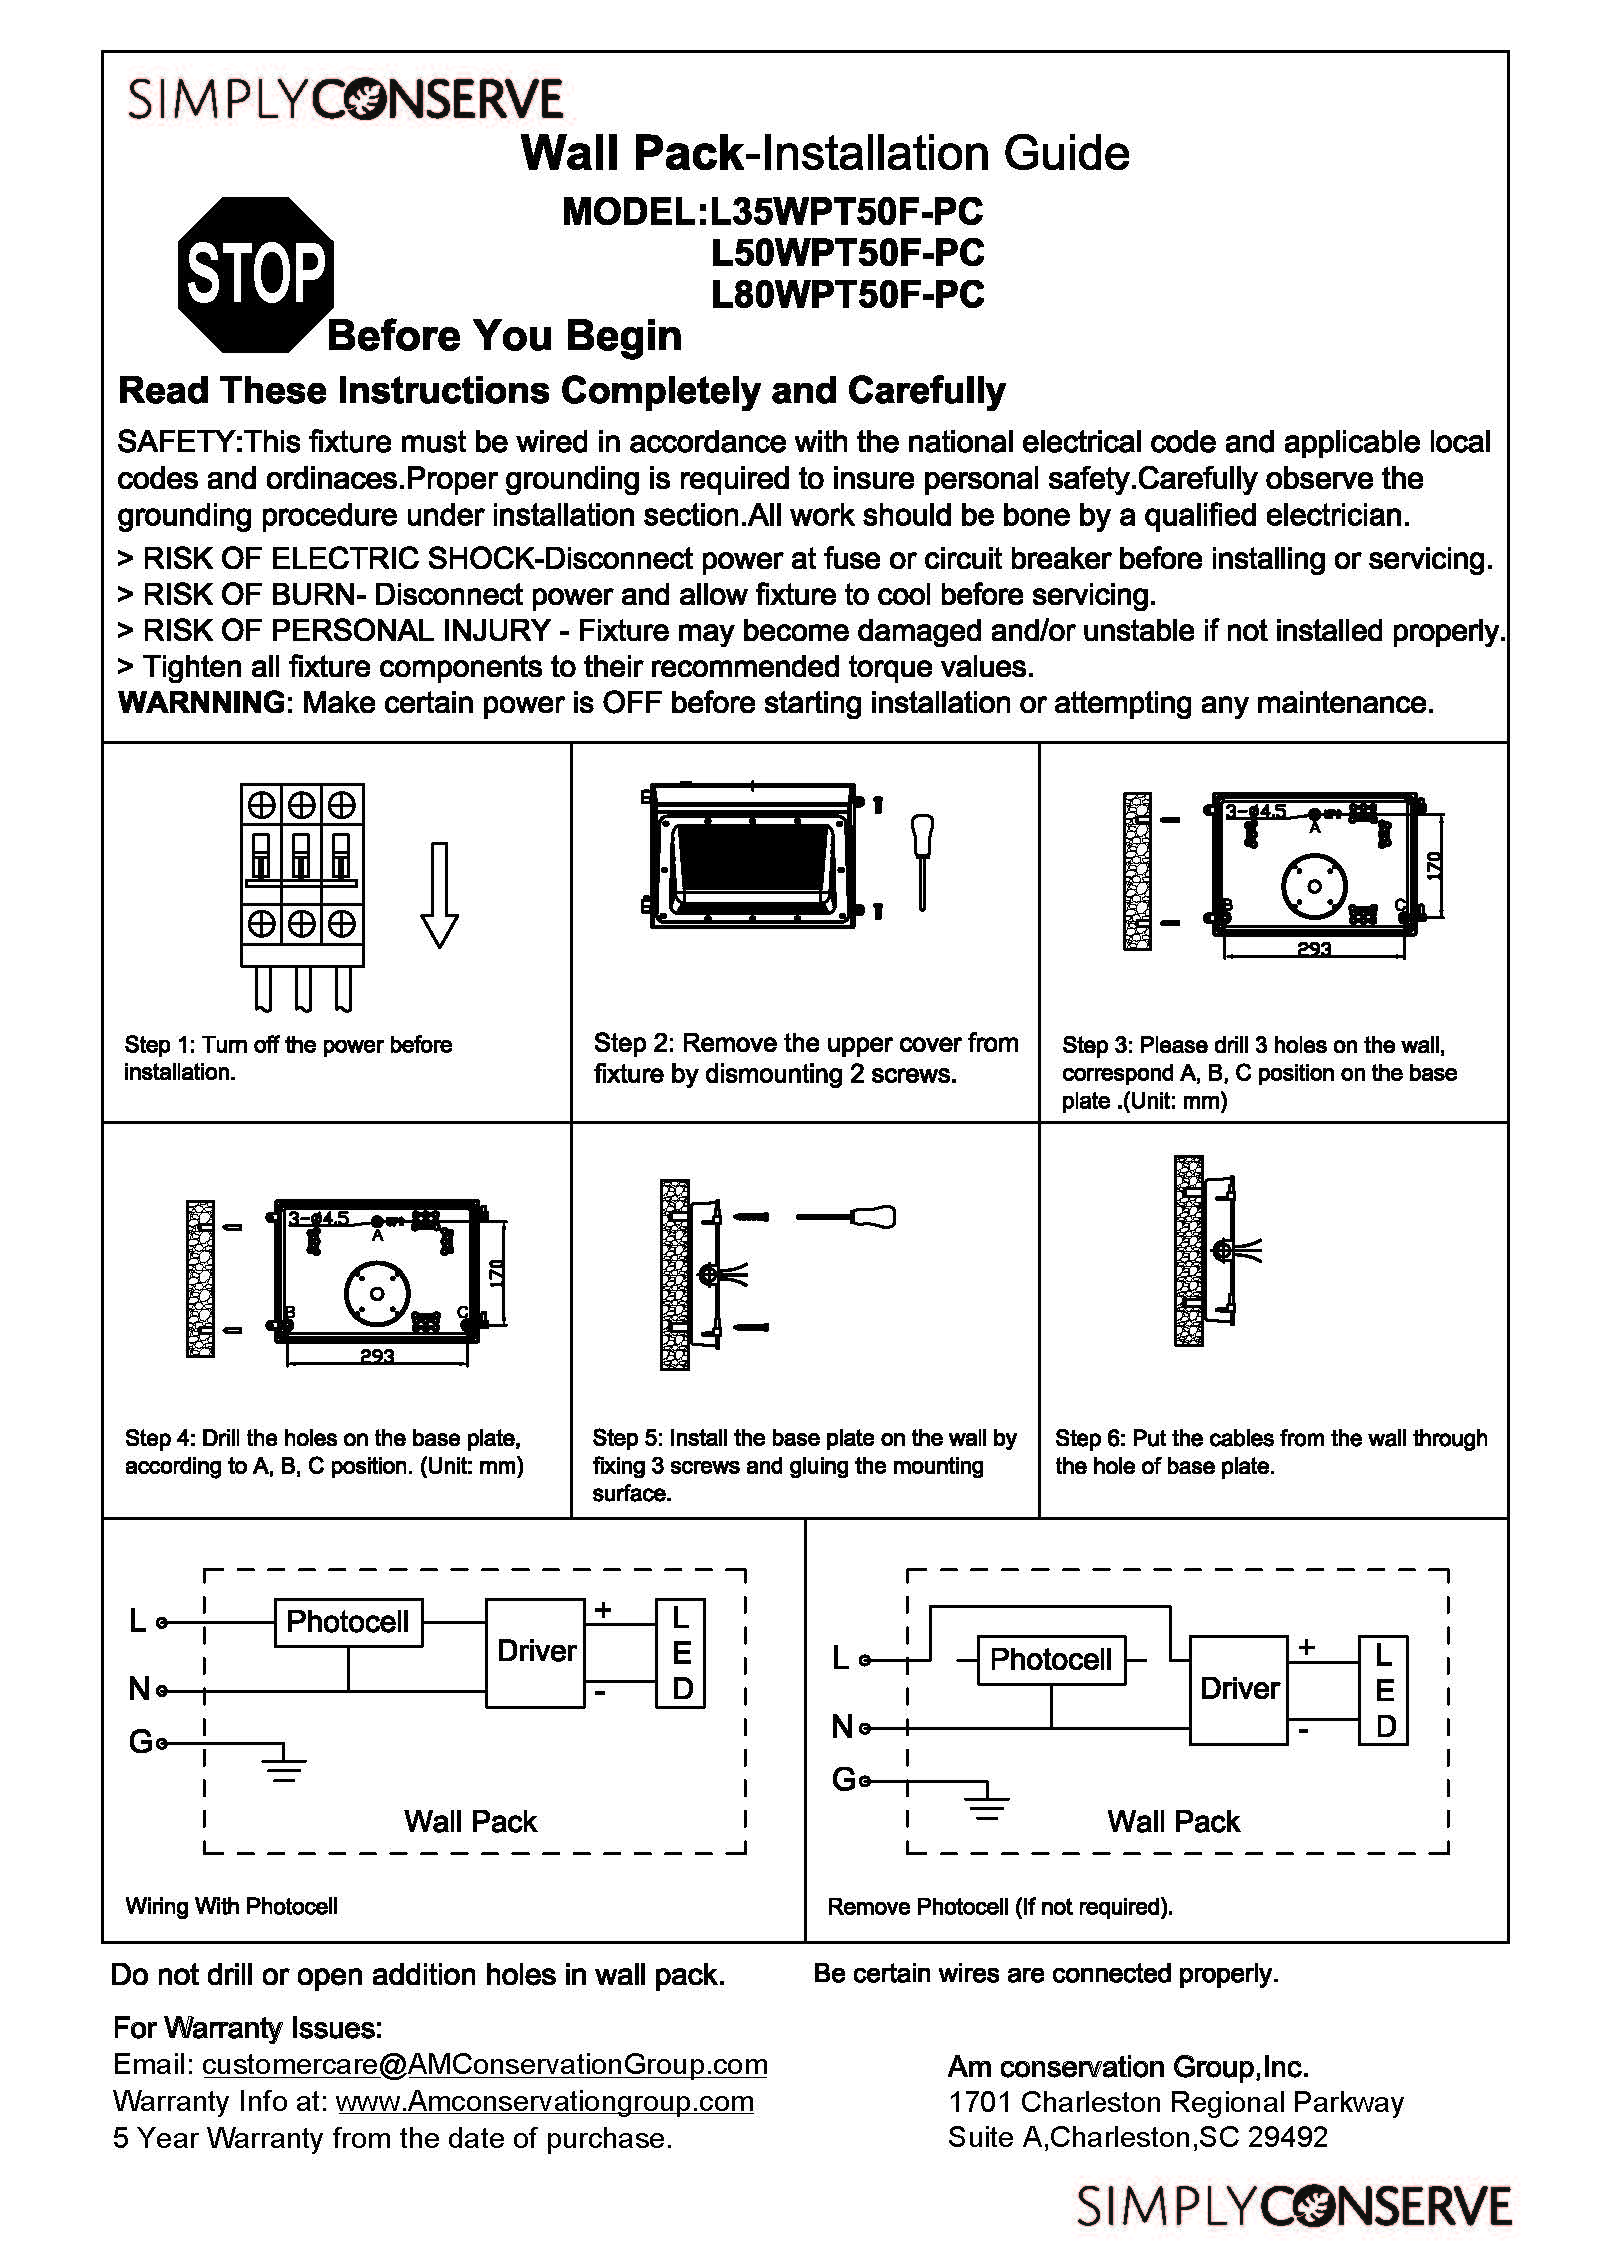 Step by step installation instructions for wall packs with a photocell.